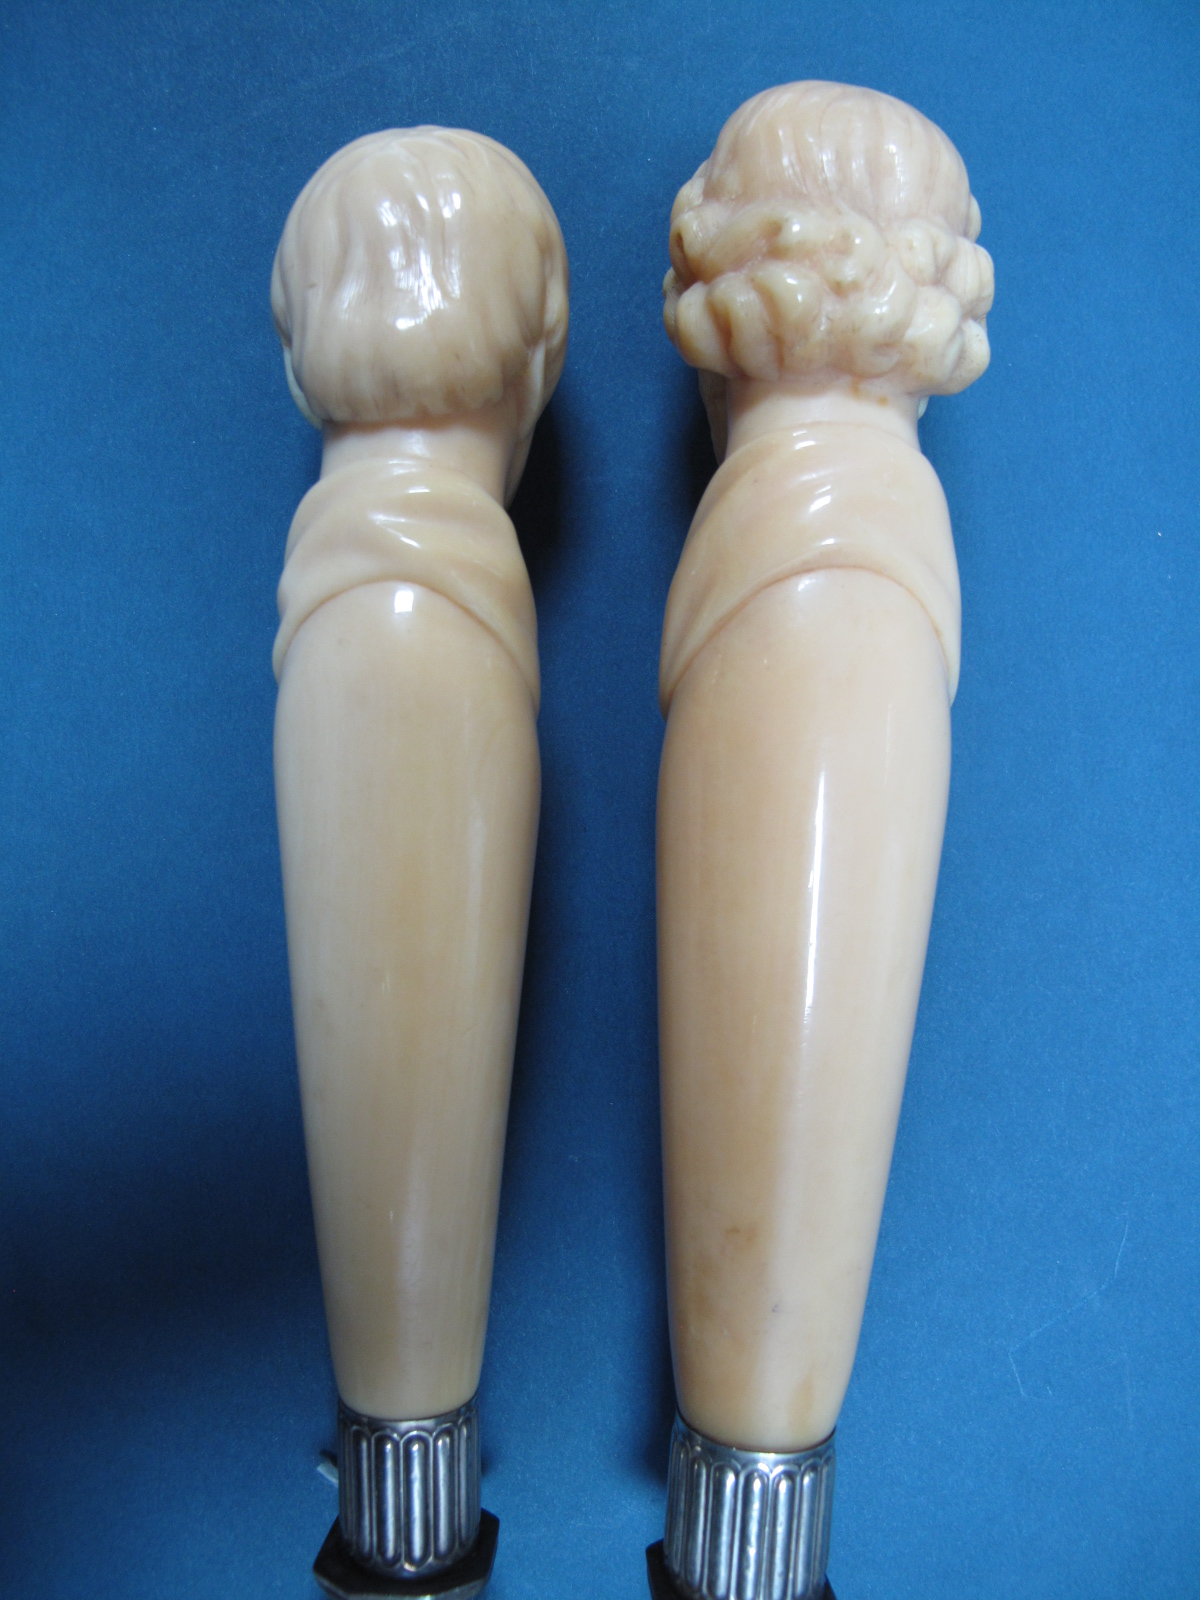 Lot 32 - A XIX Century Joseph Rodgers & Sons Two Piece Carving Set, the handles carved as Sir Walter Scott